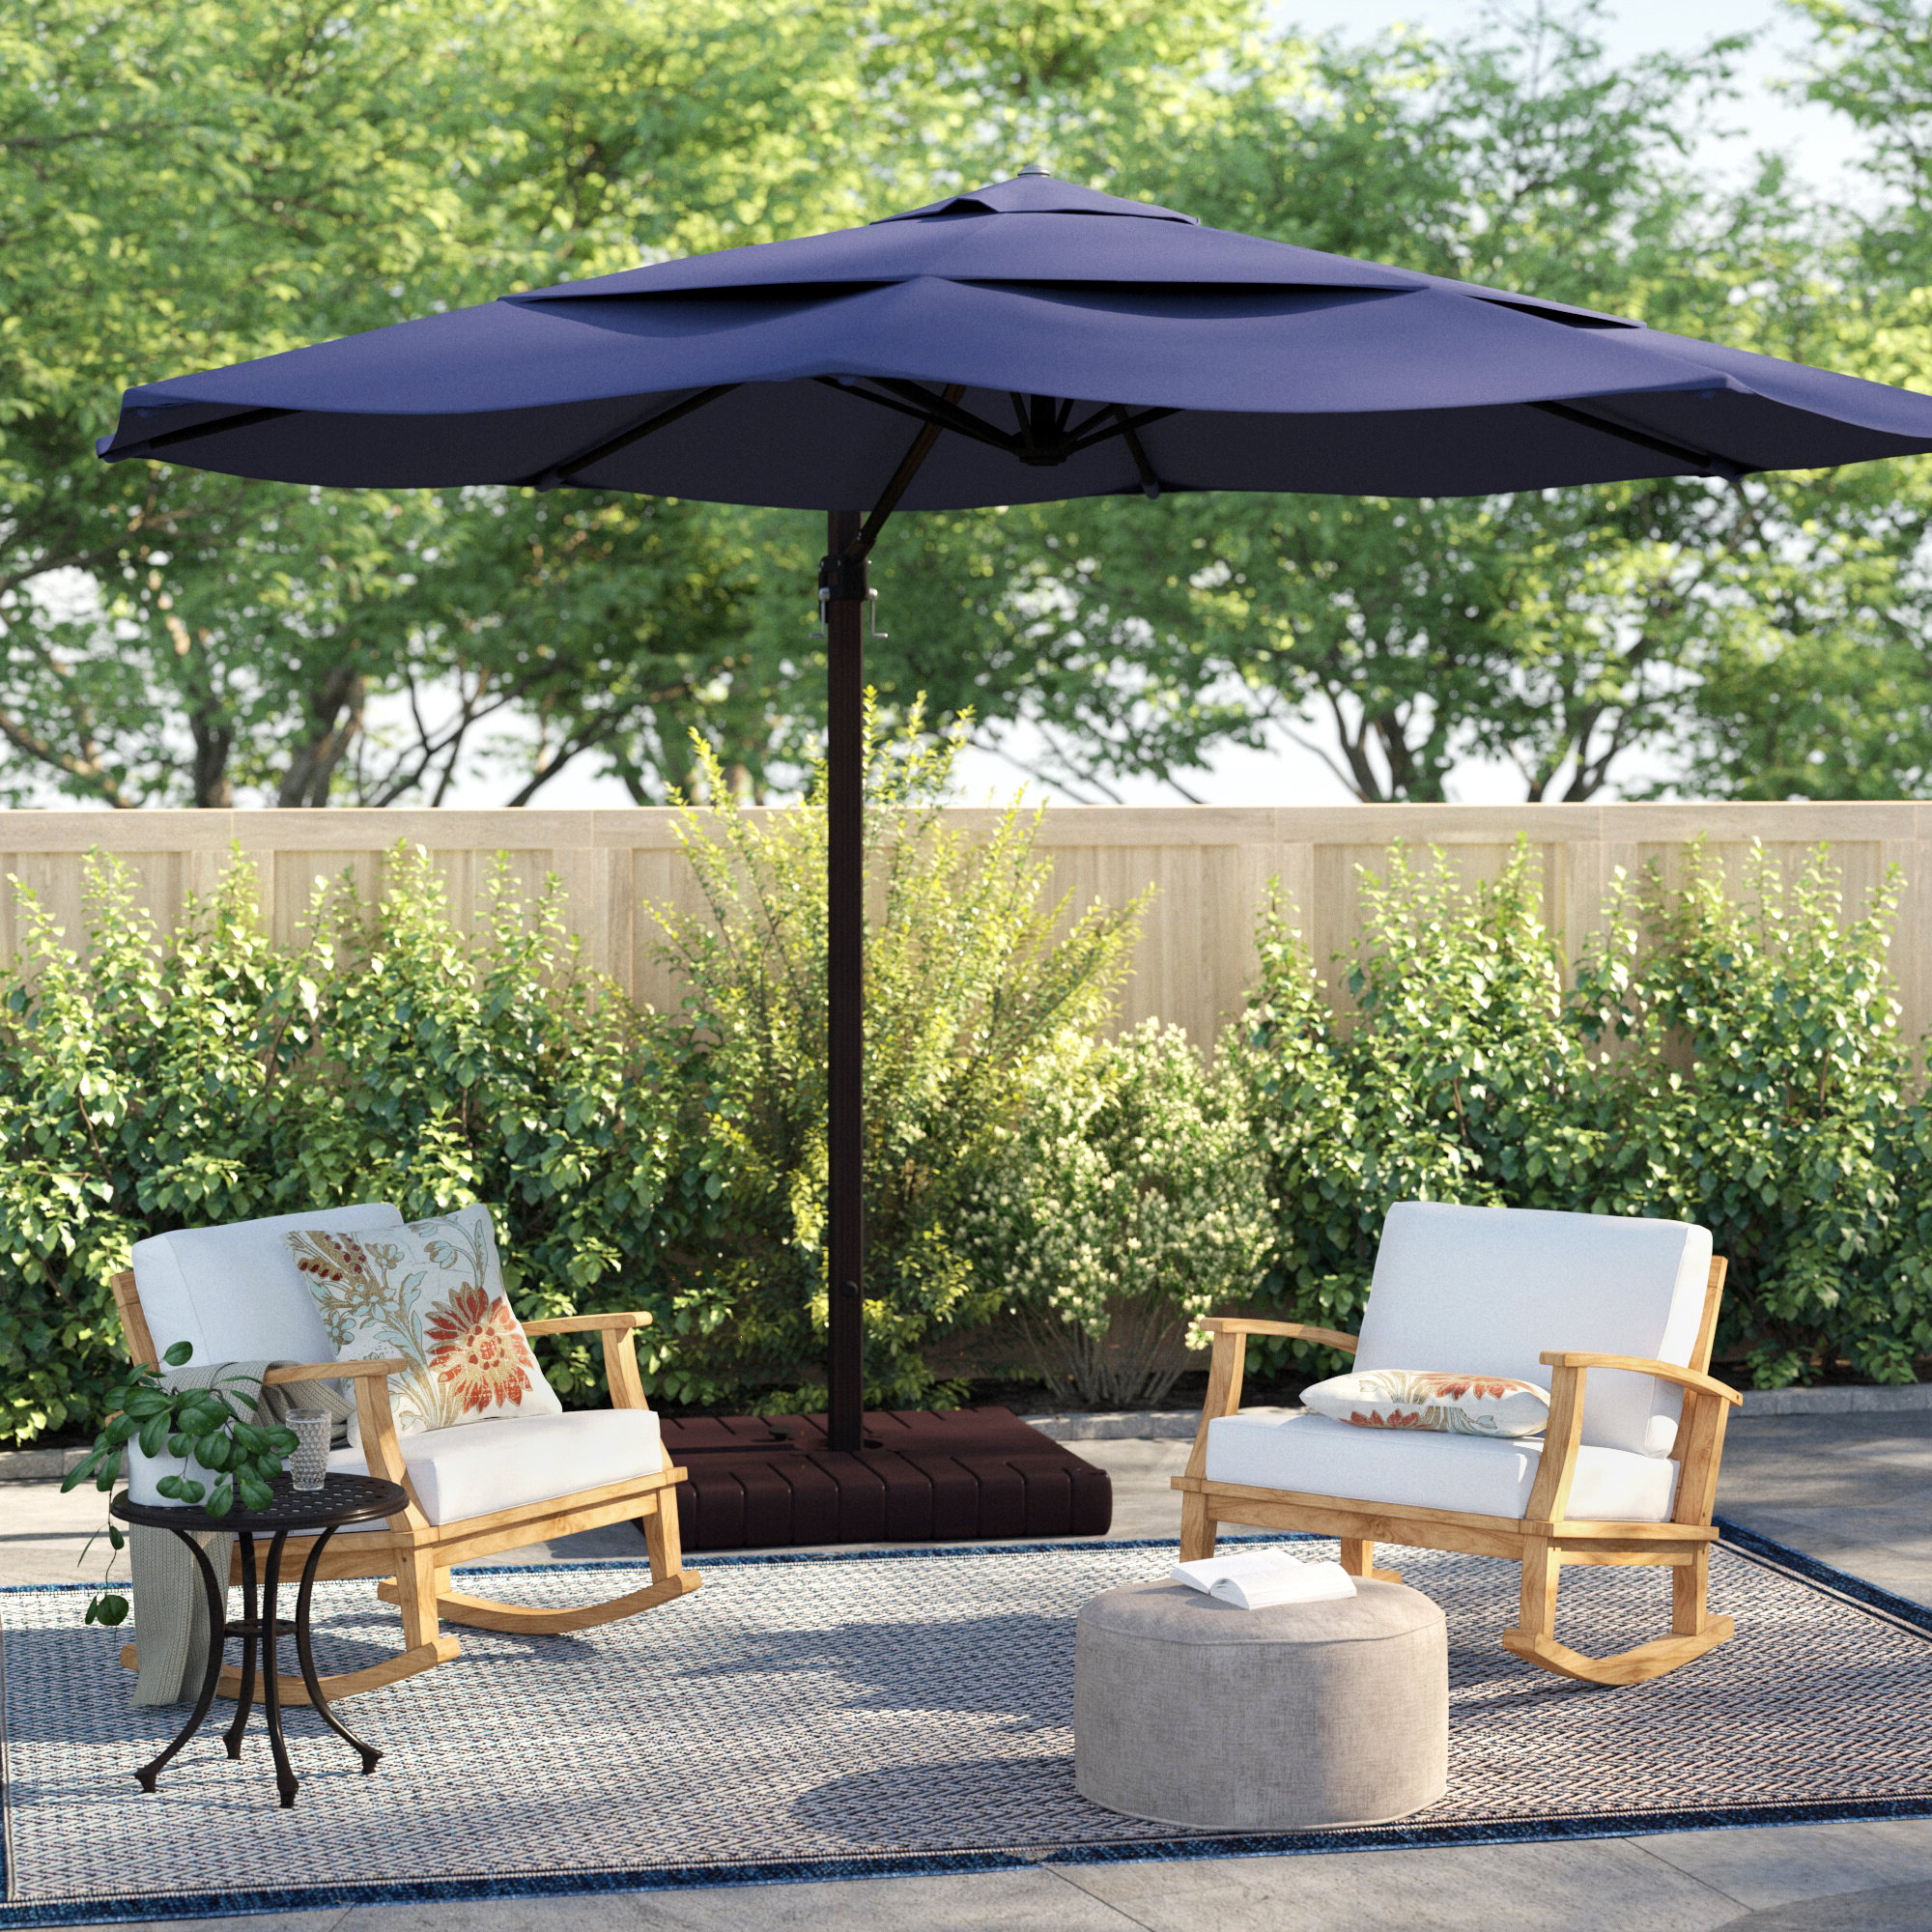 Latest Carlisle 11' Cantilever Sunbrella Umbrella Regarding Carlisle Cantilever Sunbrella Umbrellas (View 2 of 20)